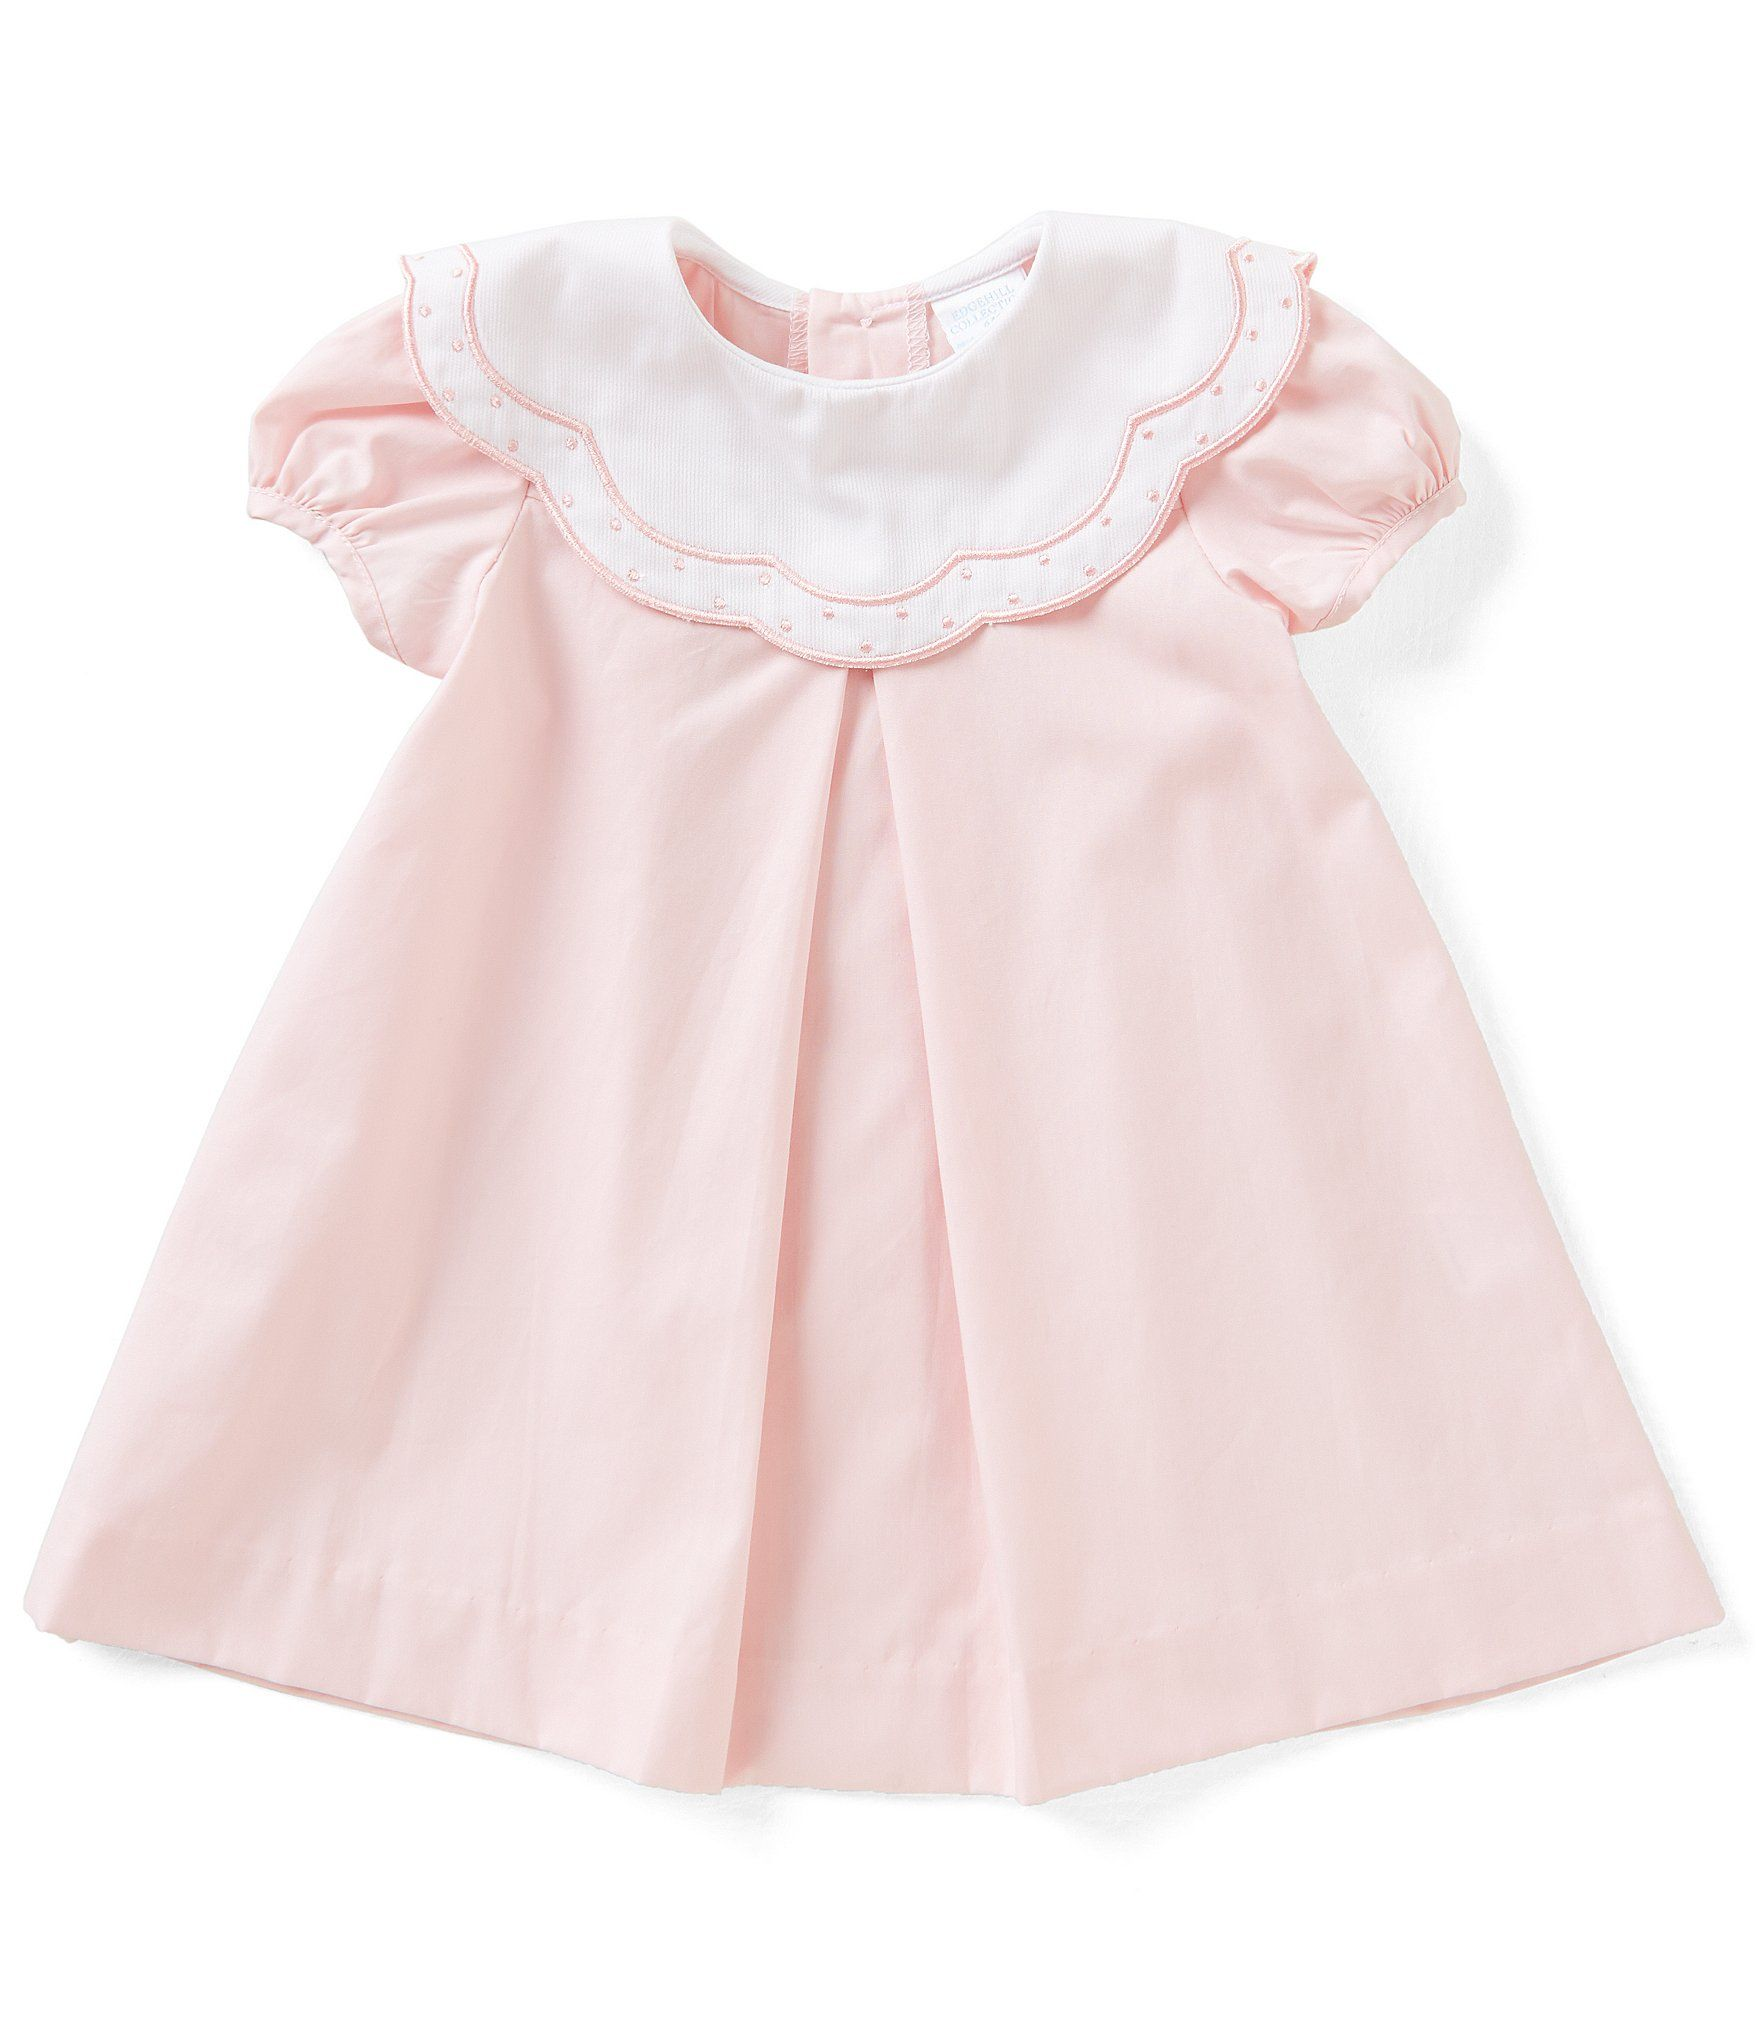 47fe4fbf6 Edgehill Collection Baby Girls 324 Months Embroidered ShortSleeve ...